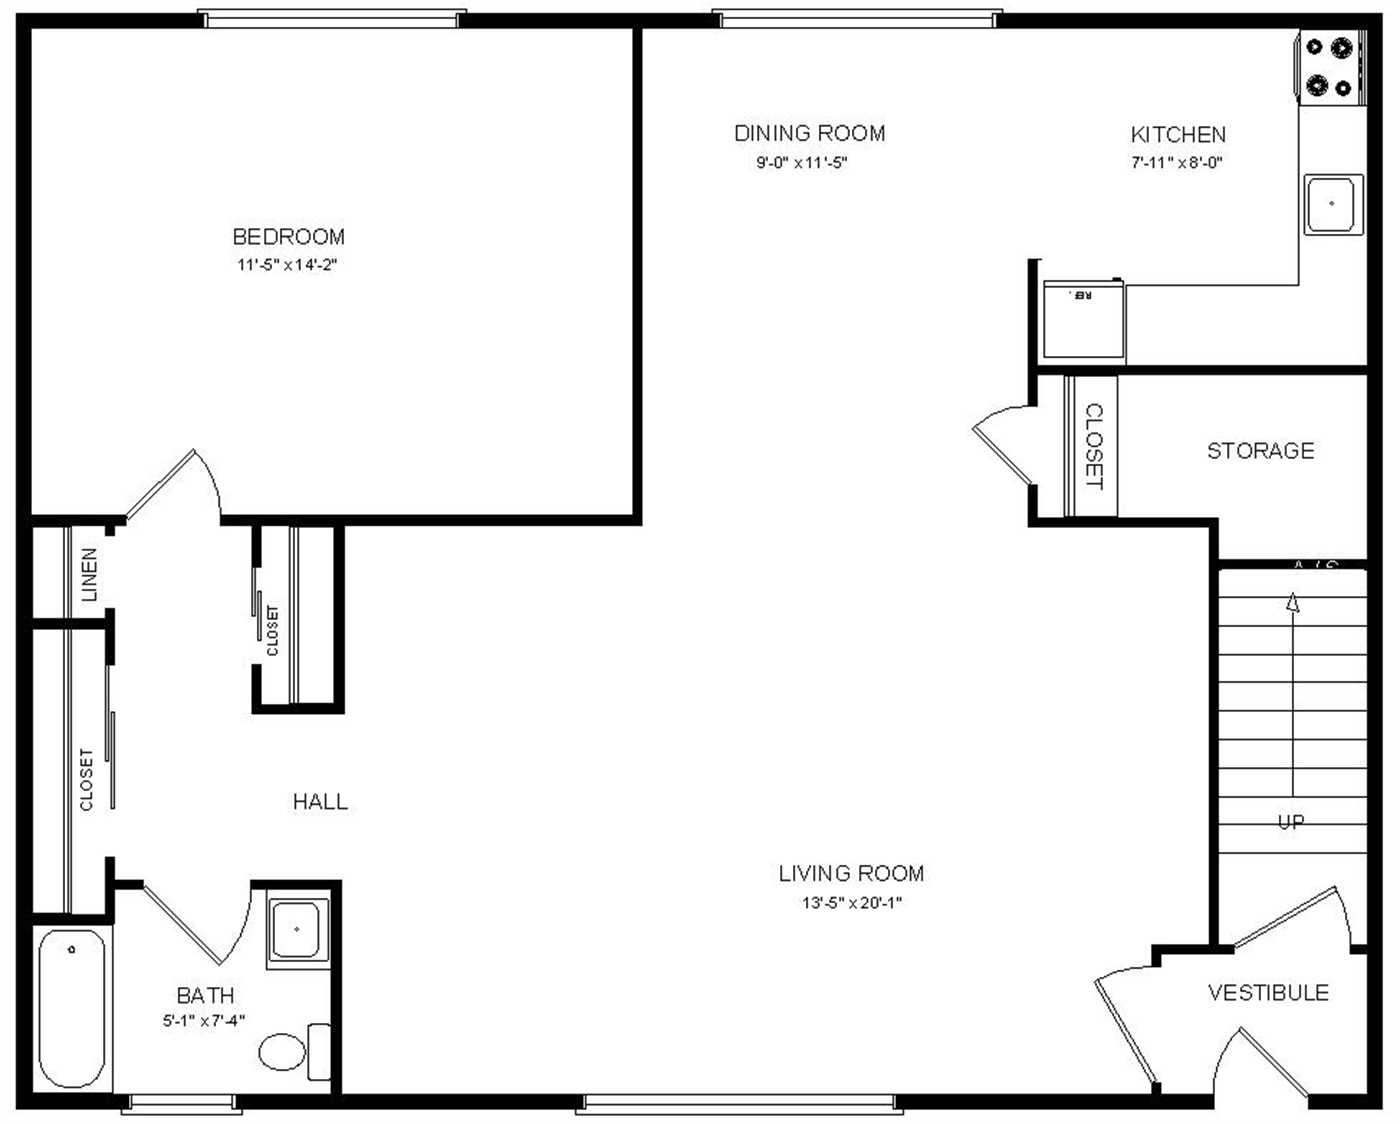 Diy printable floor plan templates plans free for Floor plan layout template